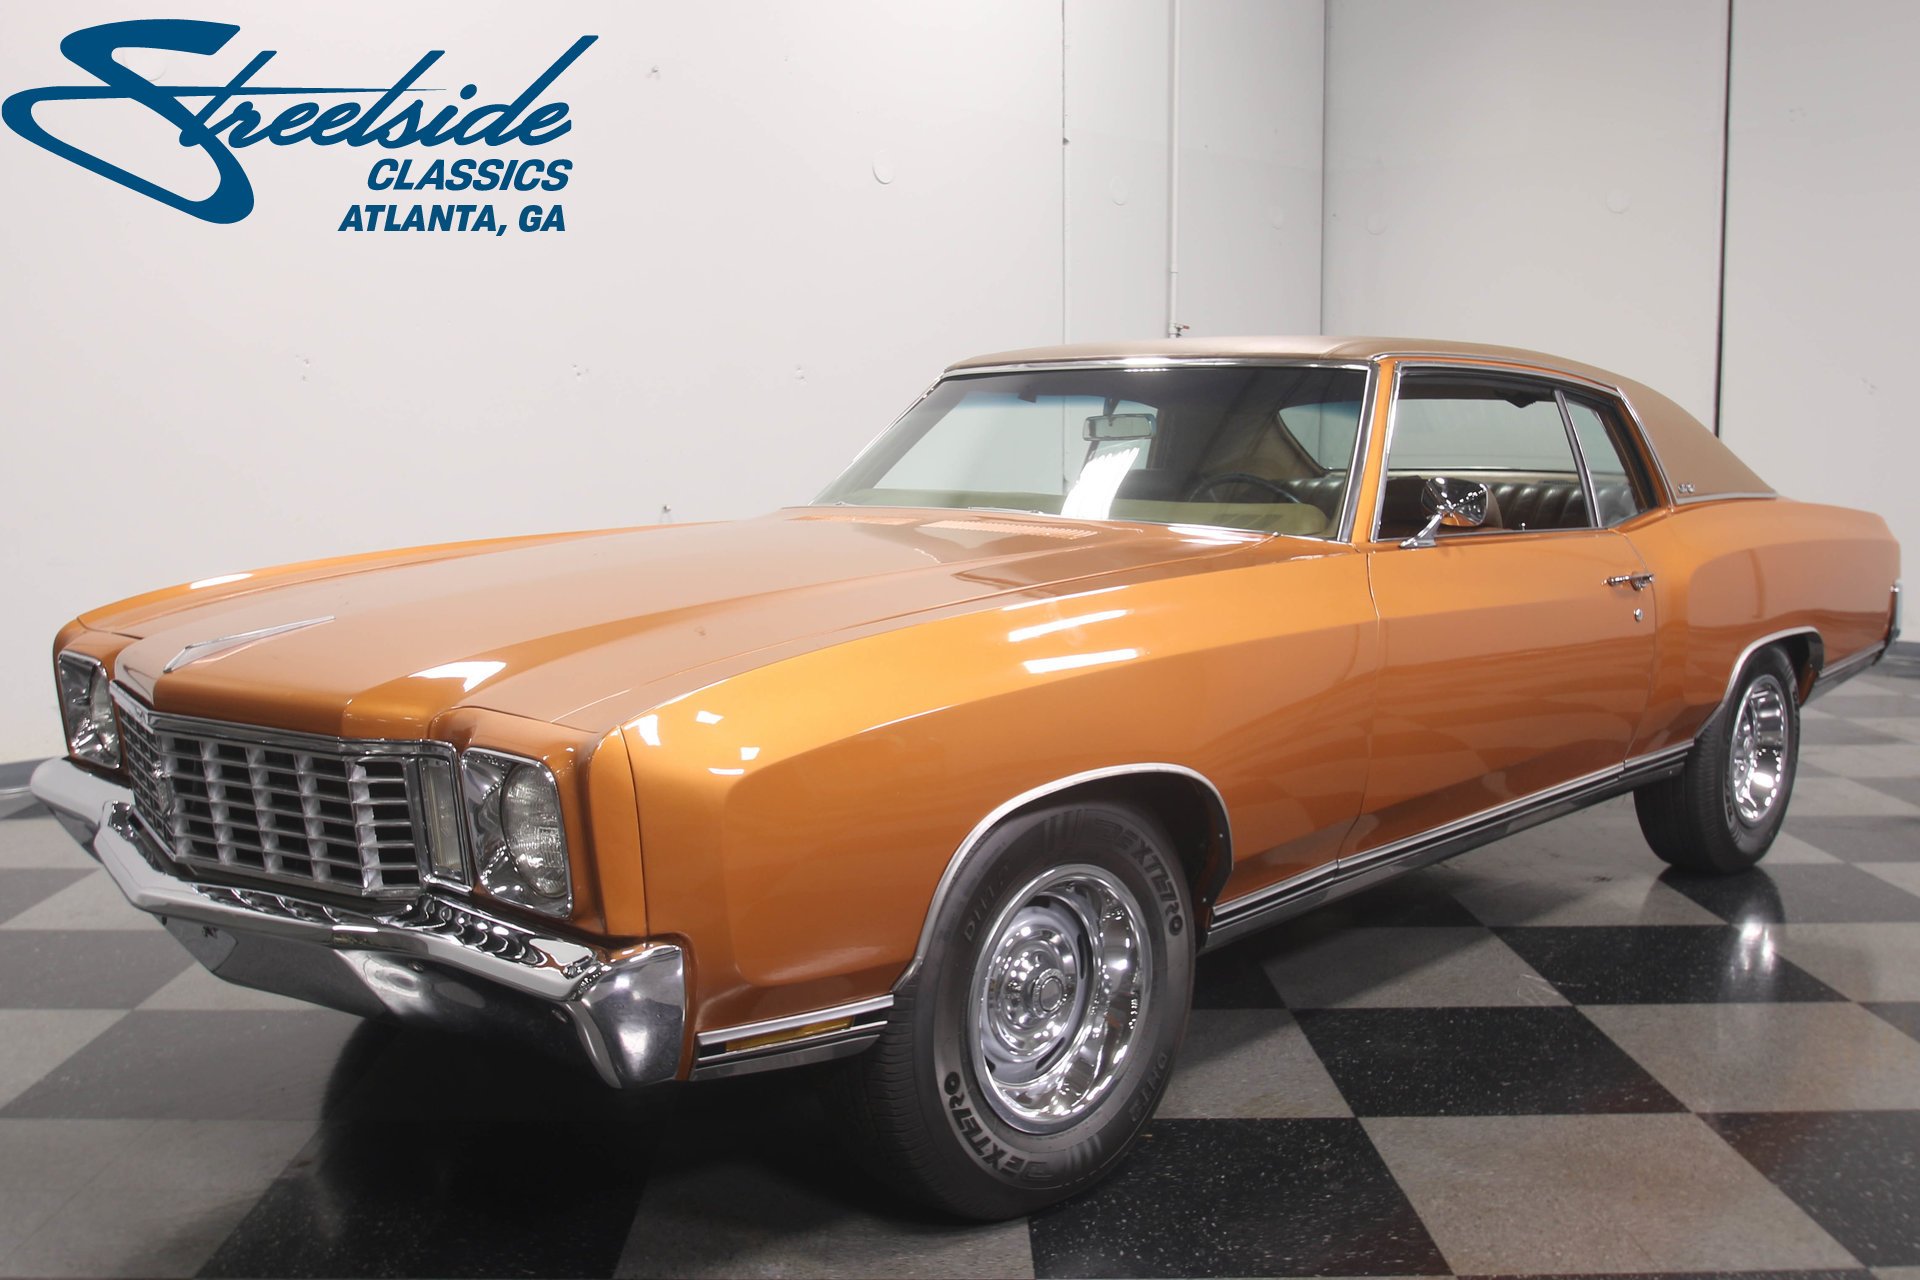 79112052541173_hd_1972-chevrolet-monte-carlo Take A Look About 1980 Monte Carlo for Sale with Mesmerizing Photos Cars Review